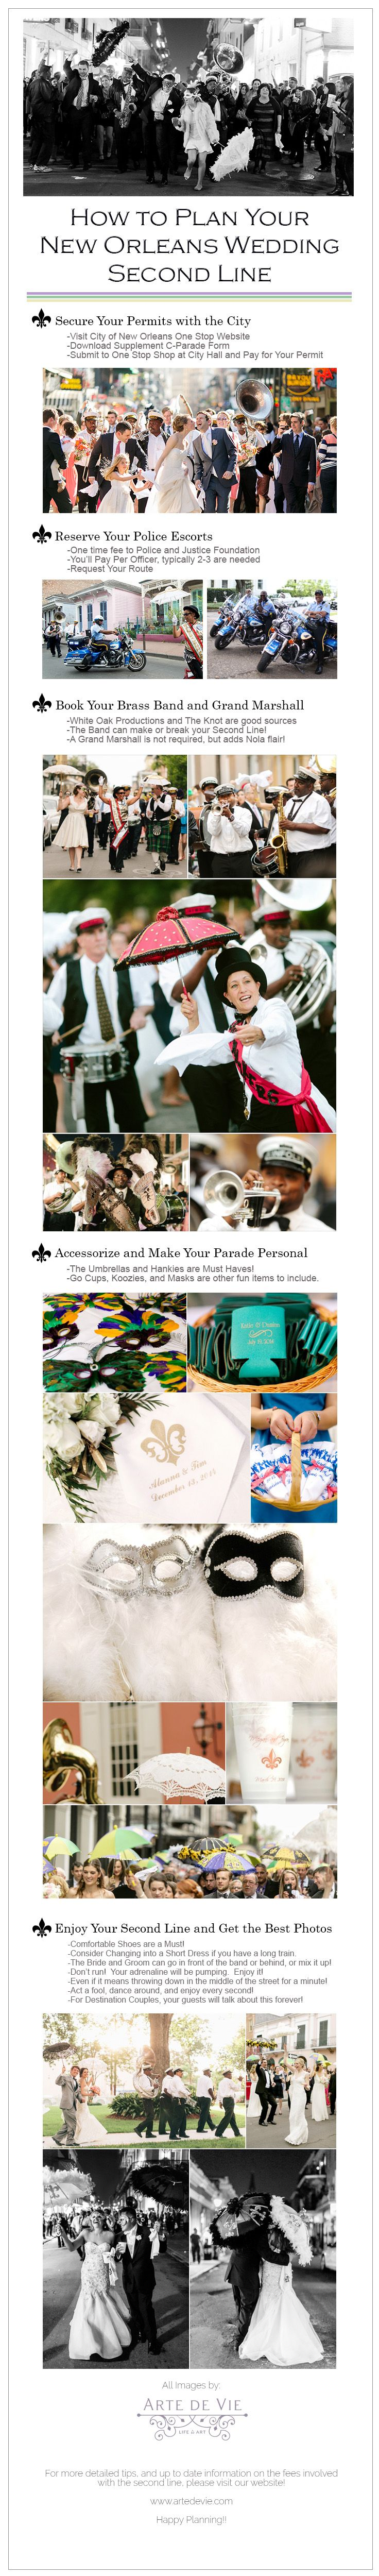 How to Plan Your New Orleans Wedding Second Line by New Orleans Wedding Photographers, Arte De Vie